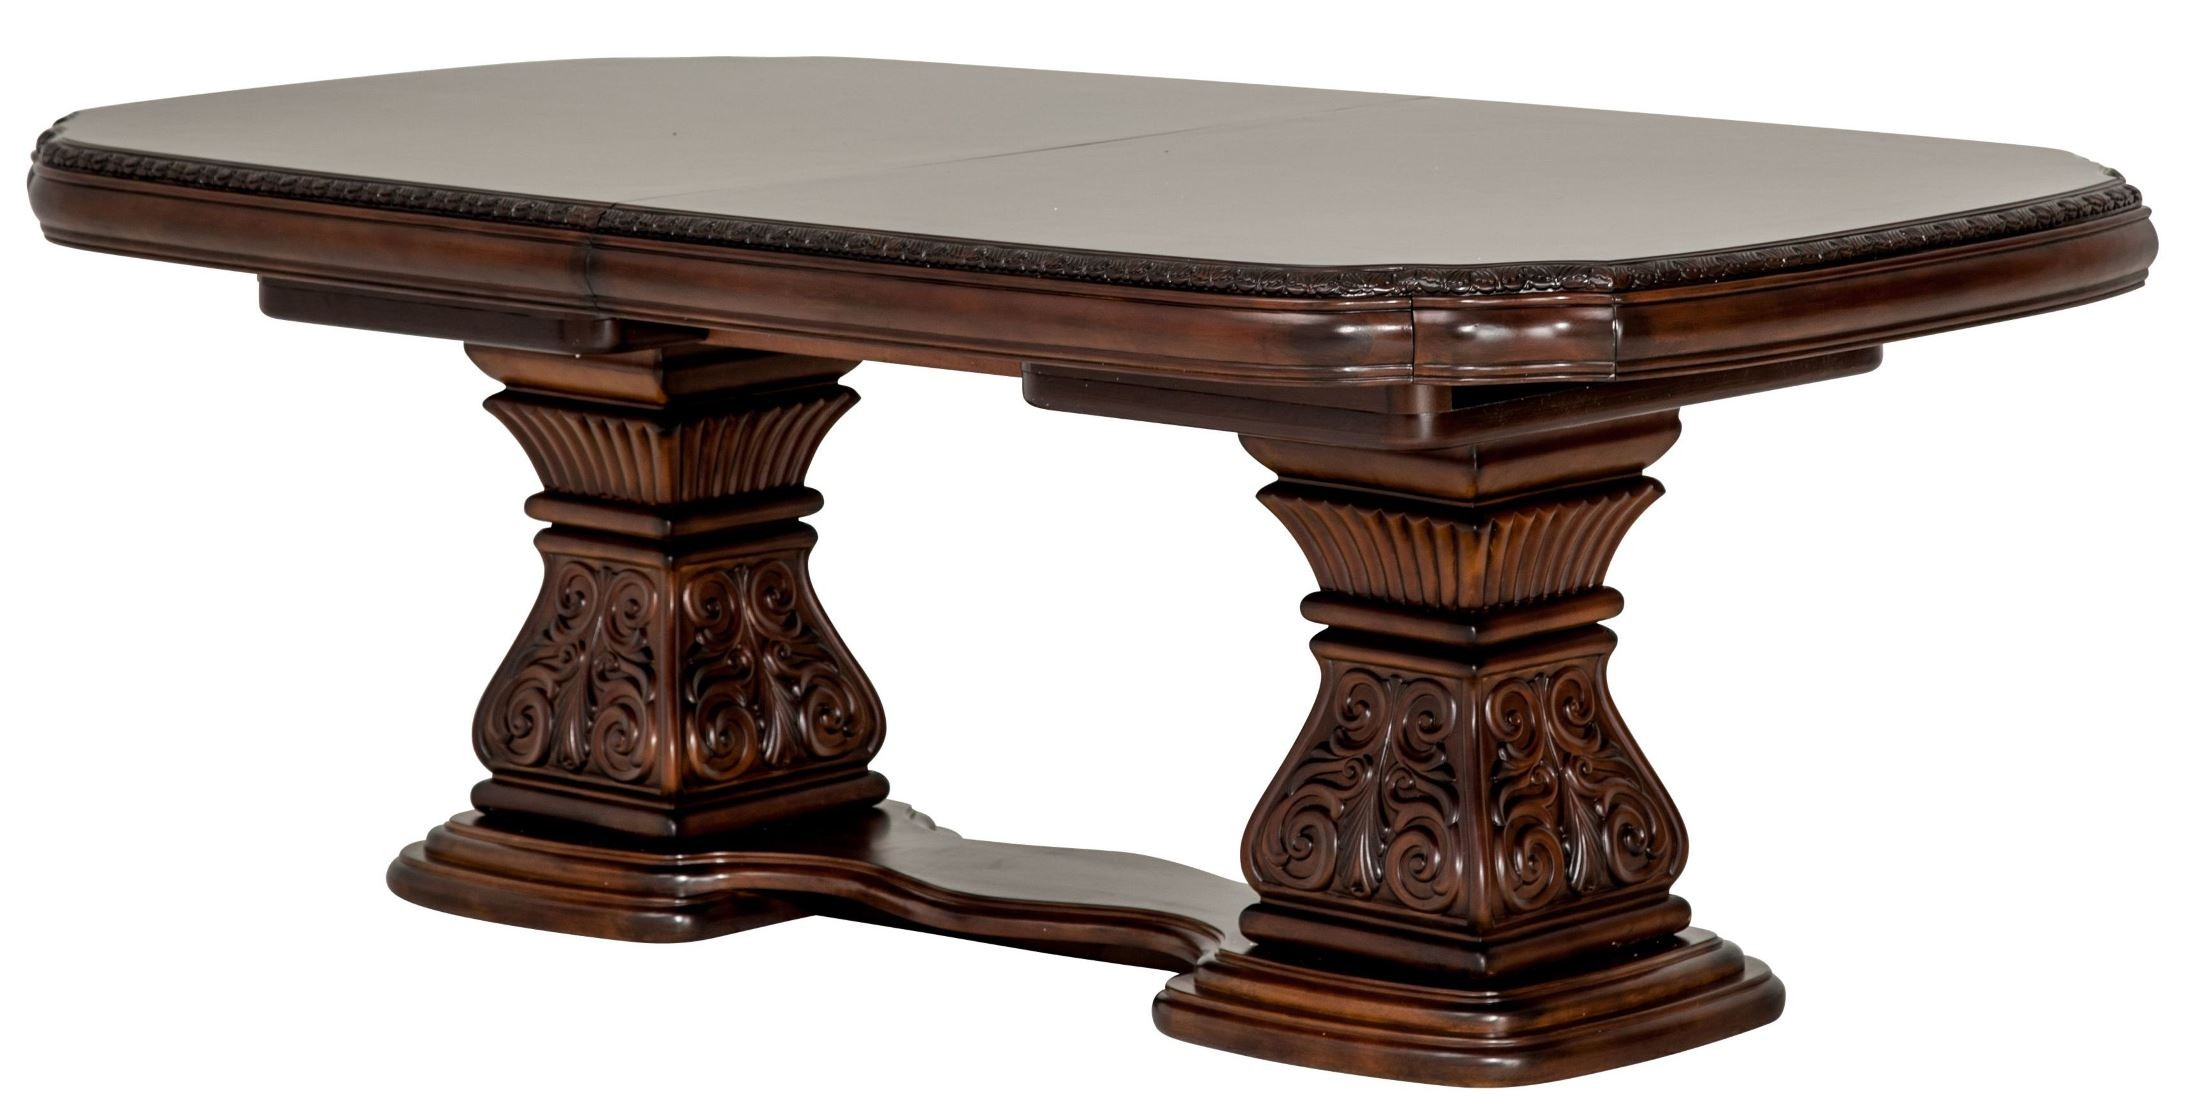 Villagio double pedestal rectangular dining table from aico 58002 coleman furniture - Rectangle pedestal dining table ...